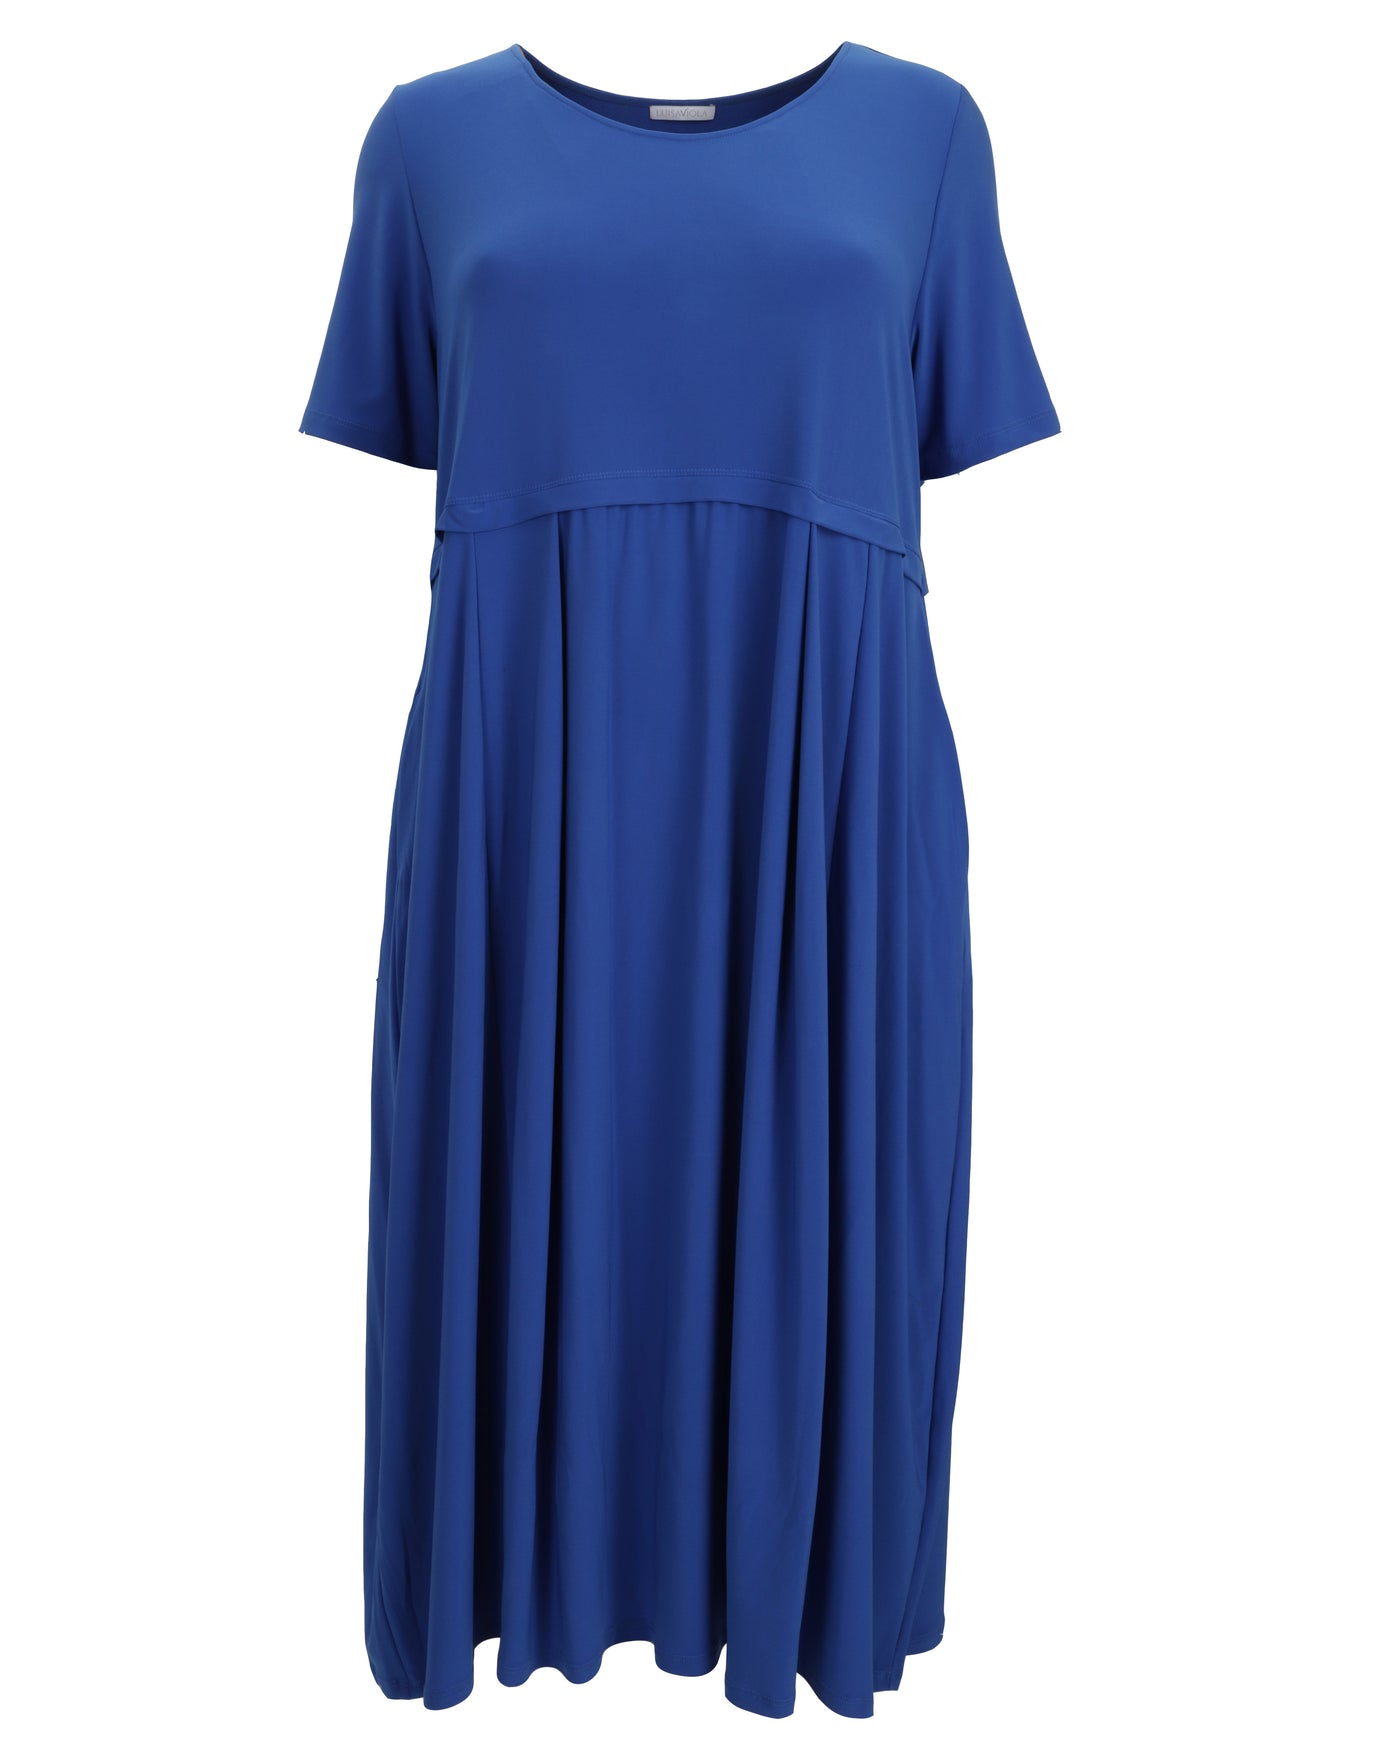 Luisa Viola Short Sleeve Jersey Maxi Dress with Inseam Pockets